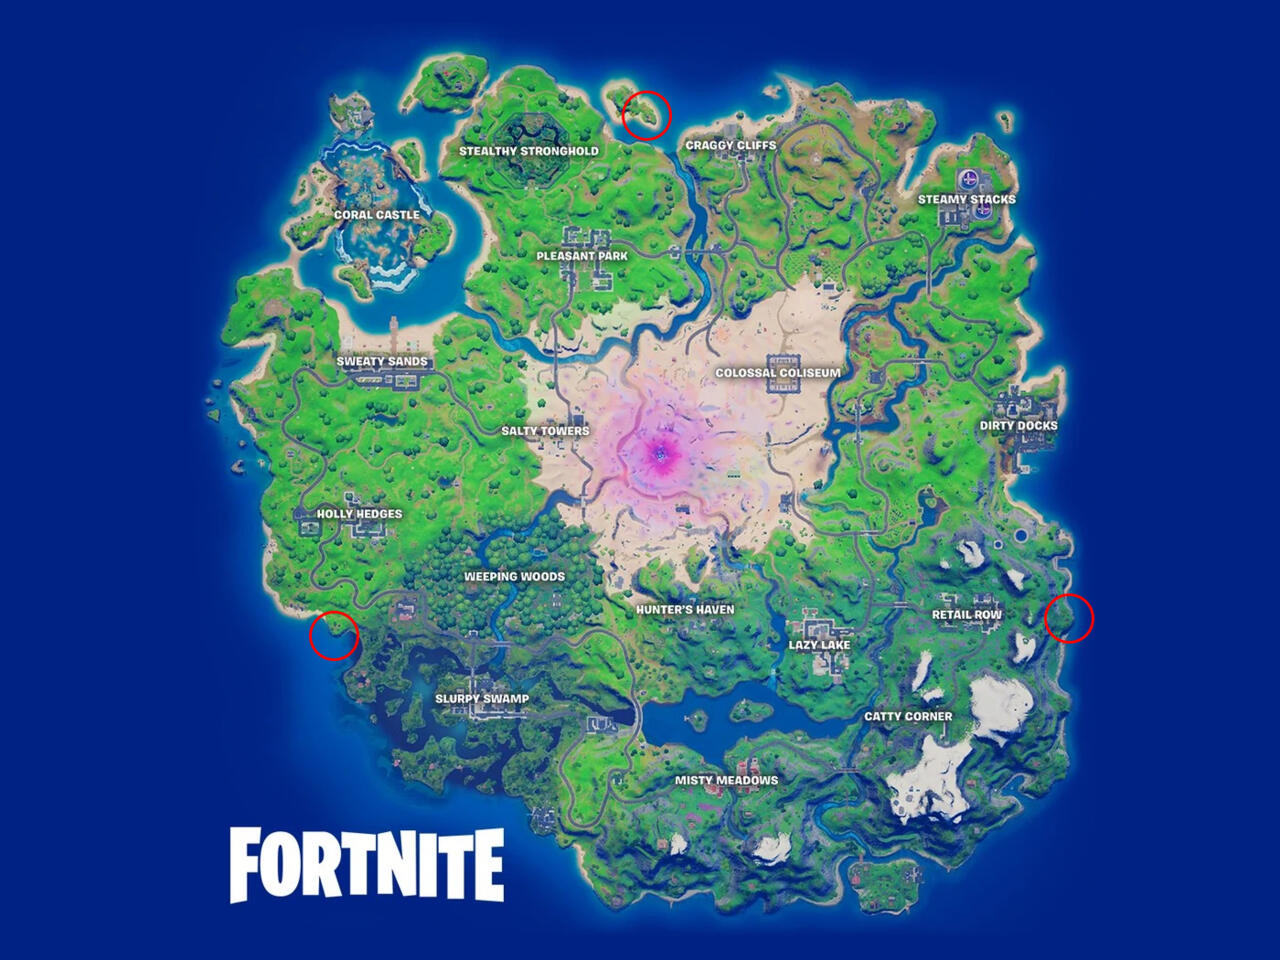 Where to find the hidden bunkers in Fortnite.